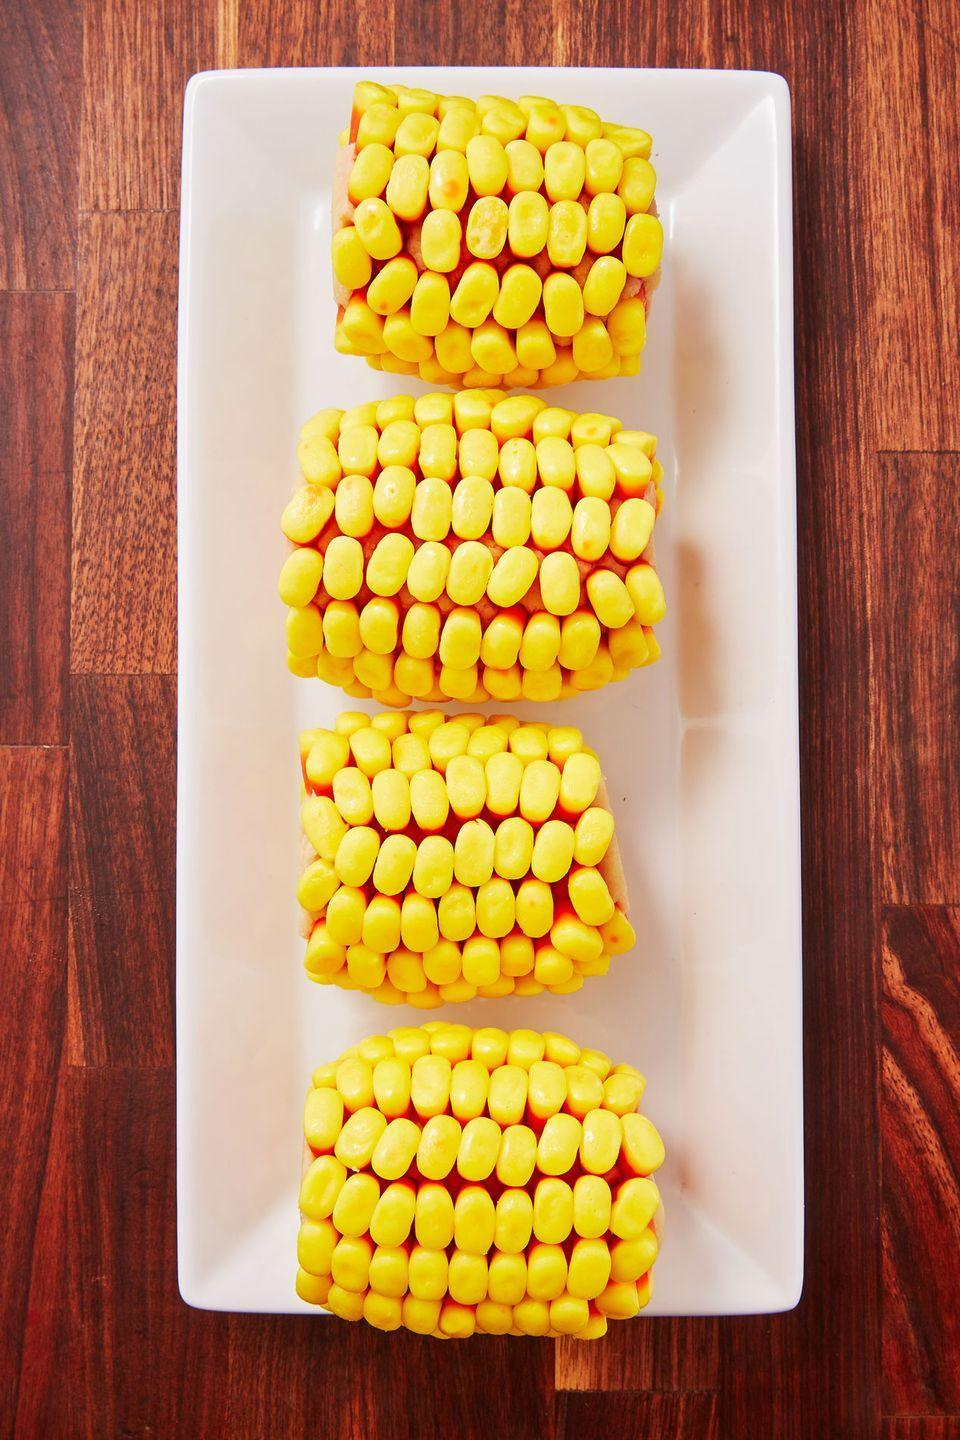 "<p>This crazy treat is made of EDIBLE sugar cookie dough!!</p><p>Get the recipe from <a href=""https://www.delish.com/holiday-recipes/halloween/a28700347/candy-corn-cob-recipe/"" rel=""nofollow noopener"" target=""_blank"" data-ylk=""slk:Delish"" class=""link rapid-noclick-resp"">Delish</a>.</p>"